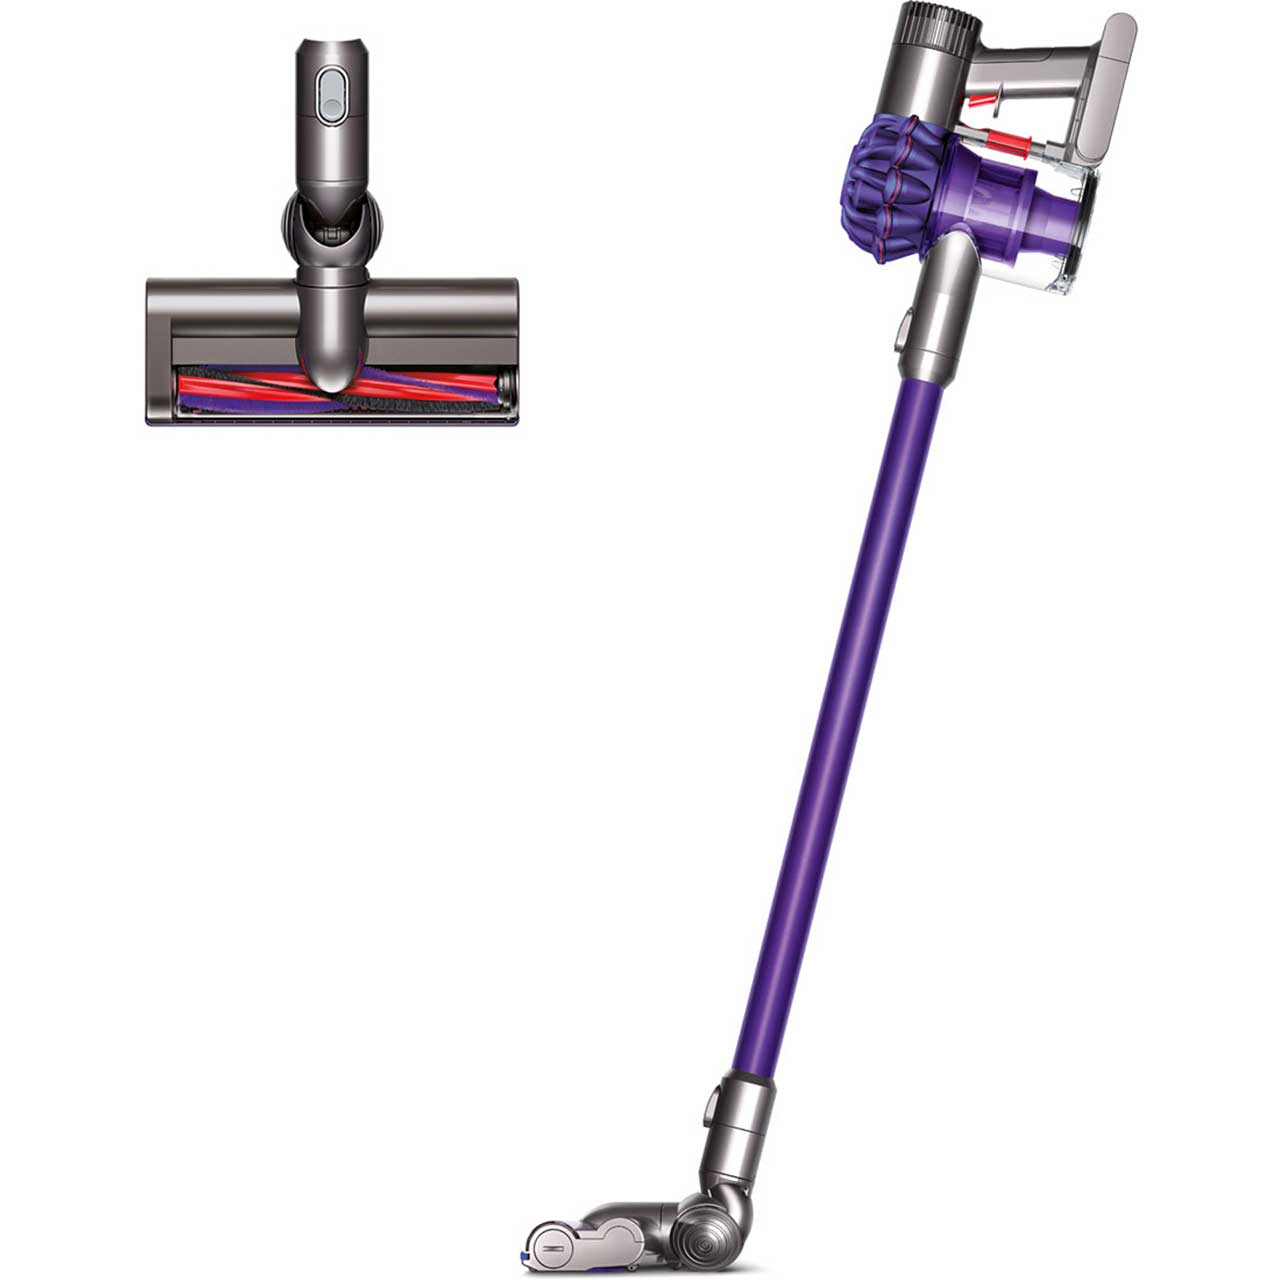 sealed dyson v6 sv04 animal handheld cordless bagless vacuum purple iron ebay. Black Bedroom Furniture Sets. Home Design Ideas